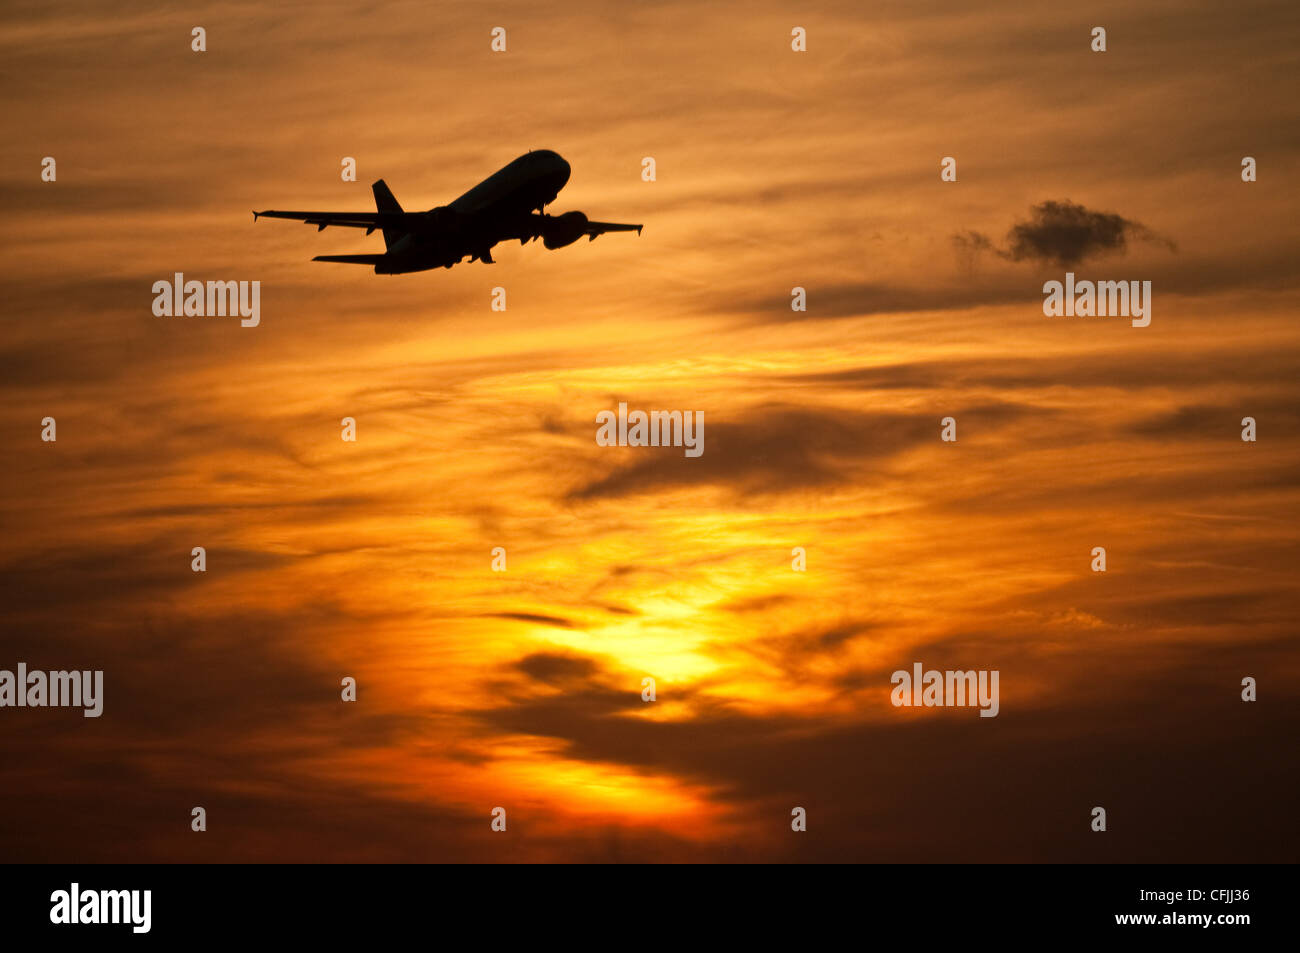 Airplane in in evening sky - Stock Image